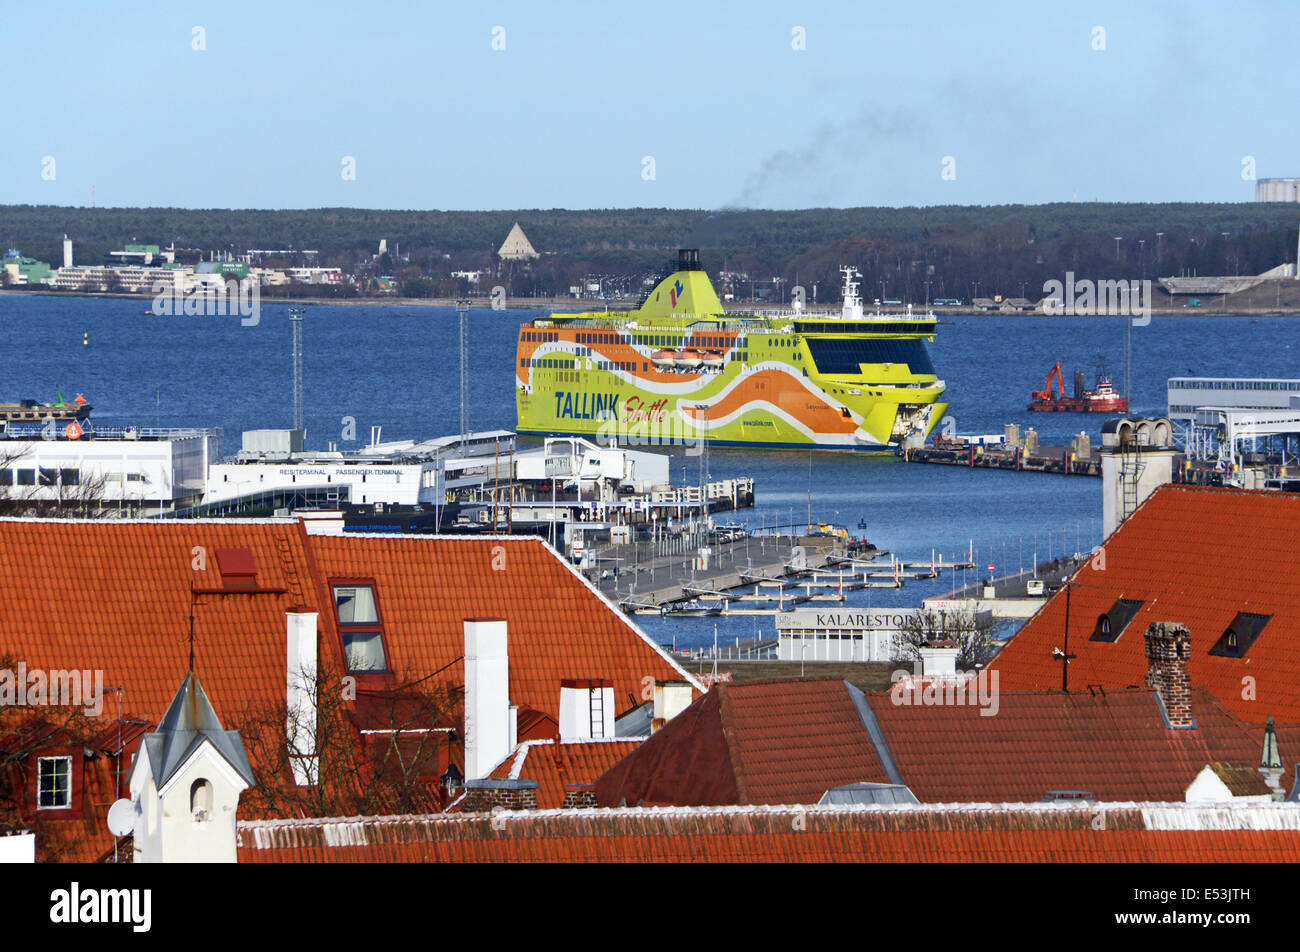 Tallink Shuttle Superstar arriving in Tallinn harbour in Estonia - Stock Image